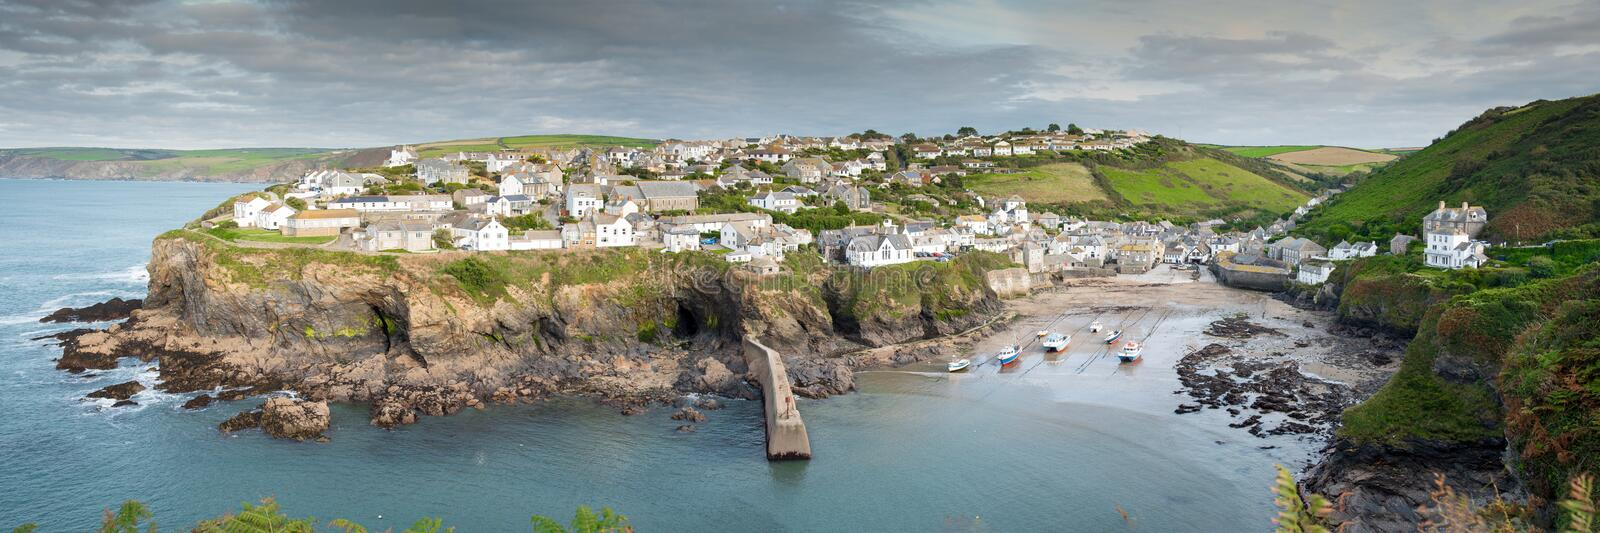 Port Isaac. Panoramic view of the picturesque fishing village Port Isaac in northern Cornwall stock photography